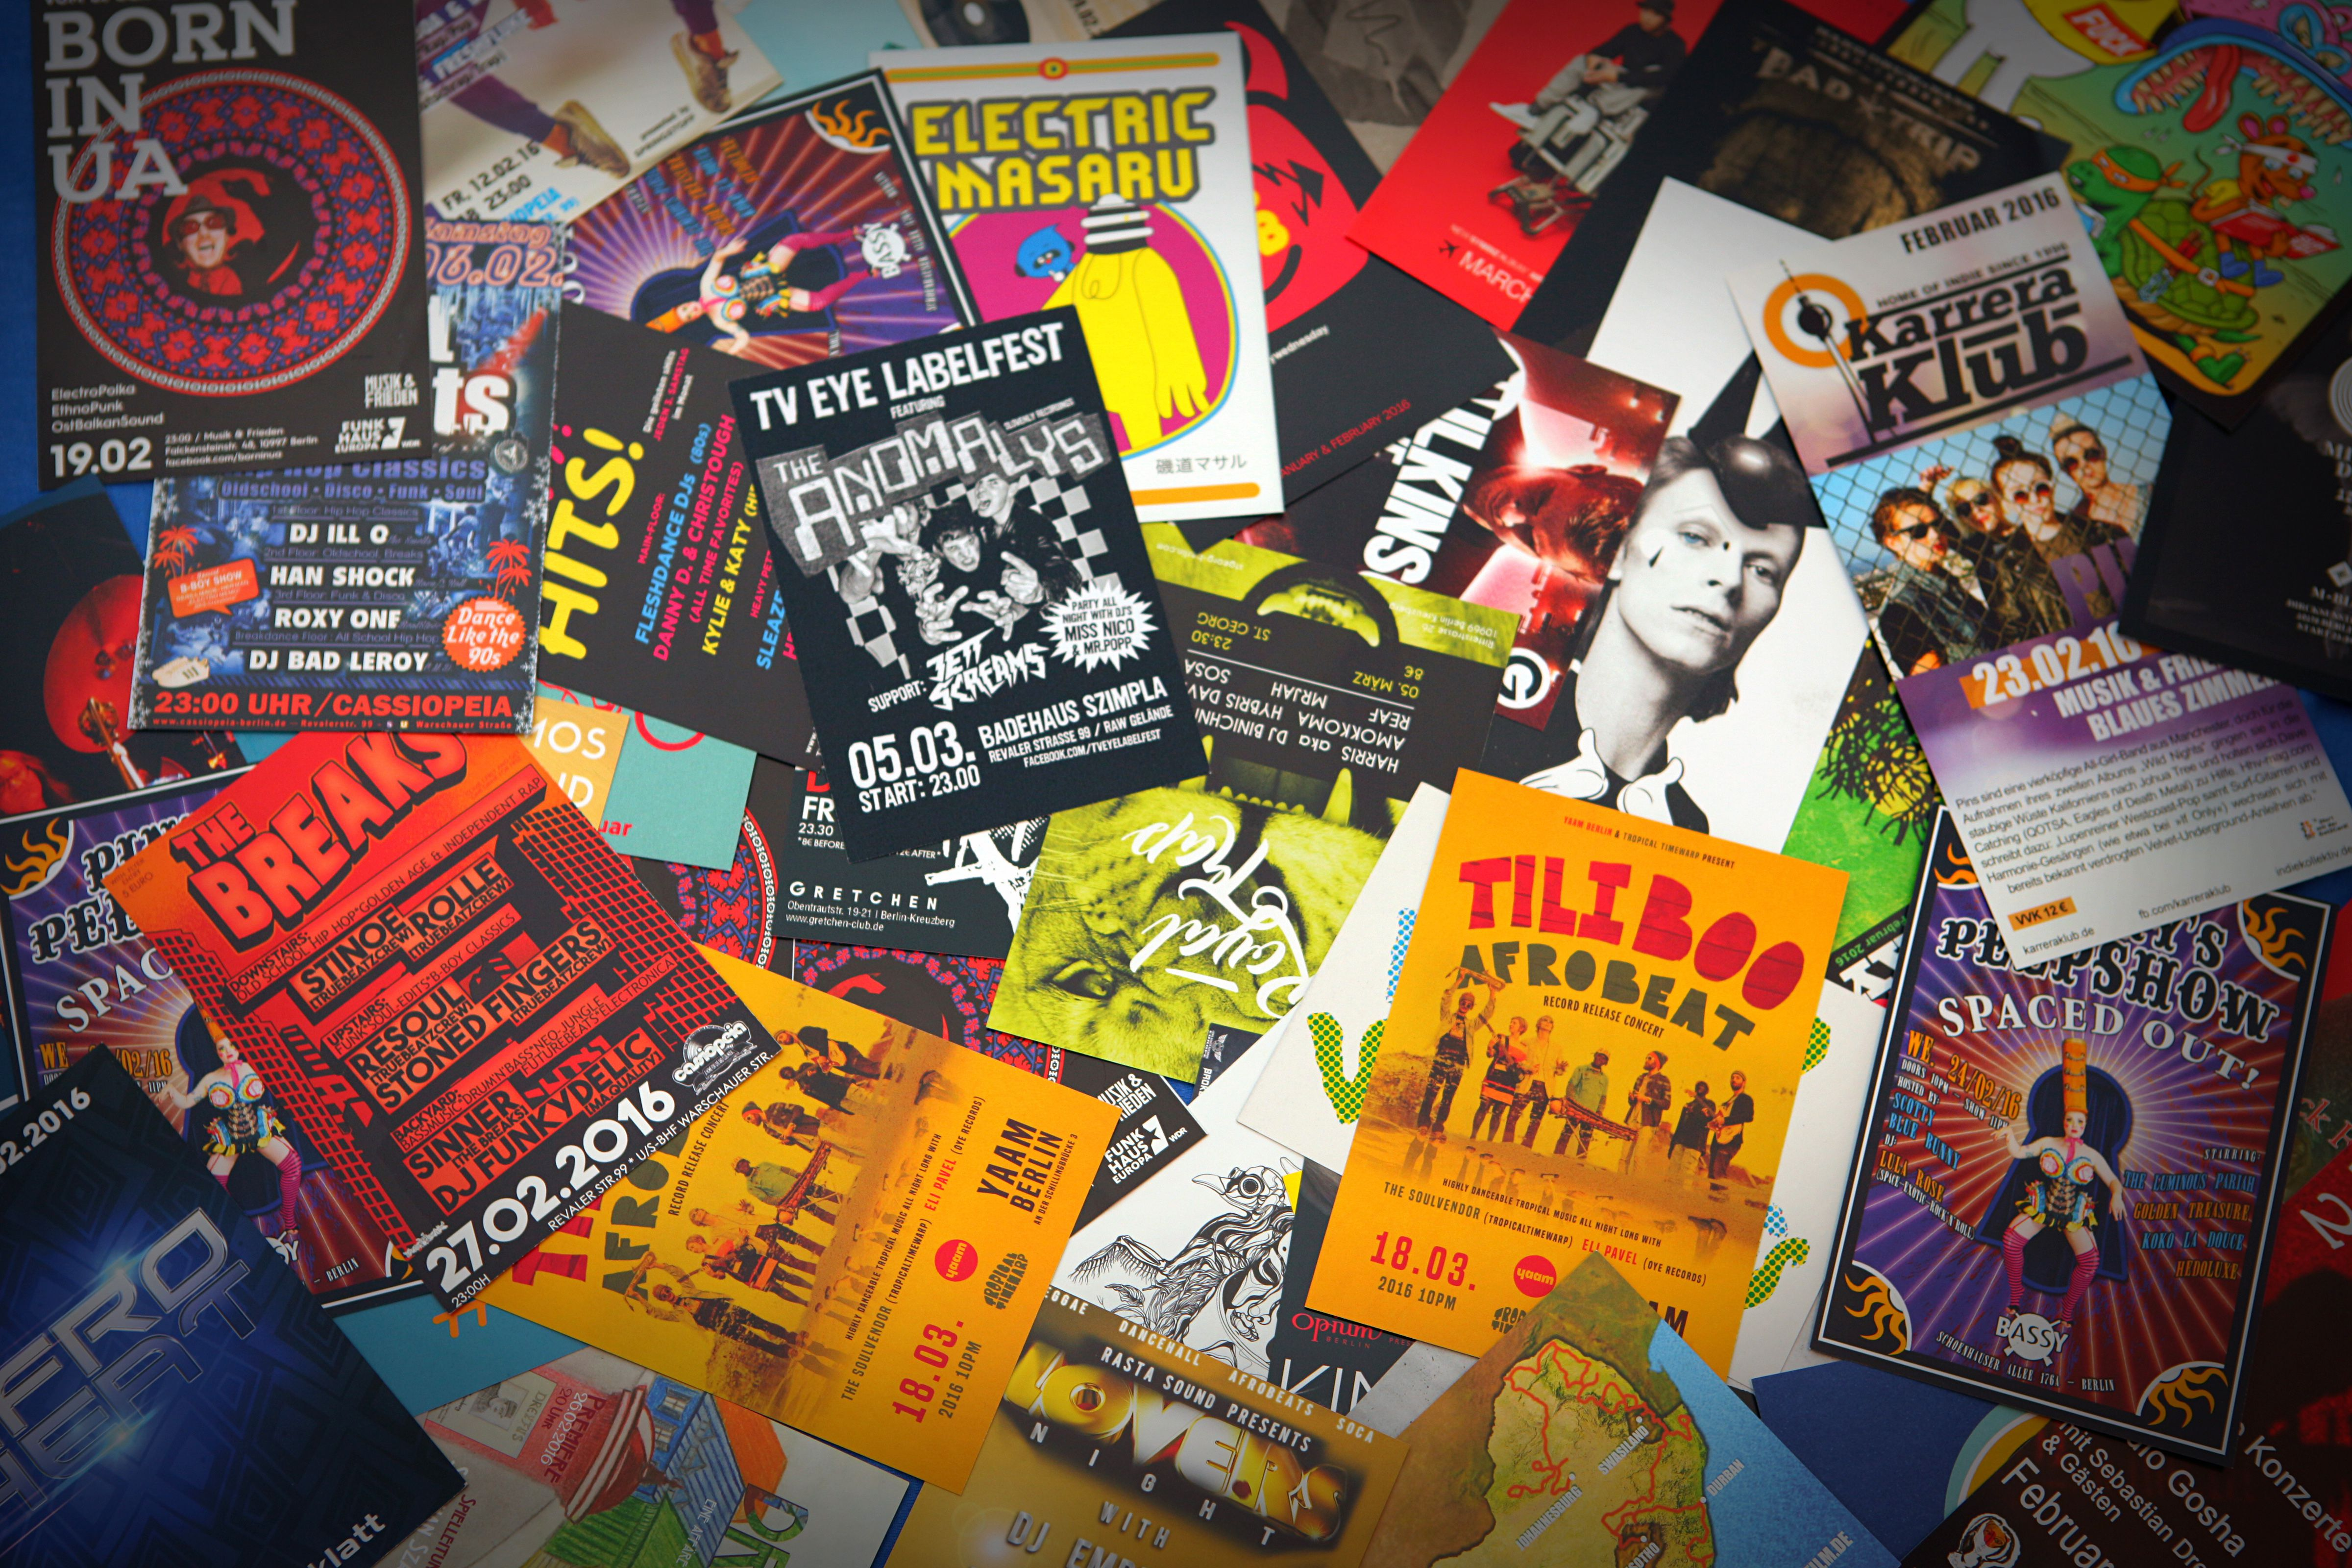 Berlin nightlife and music scene: flyers, leaflets and advertisements